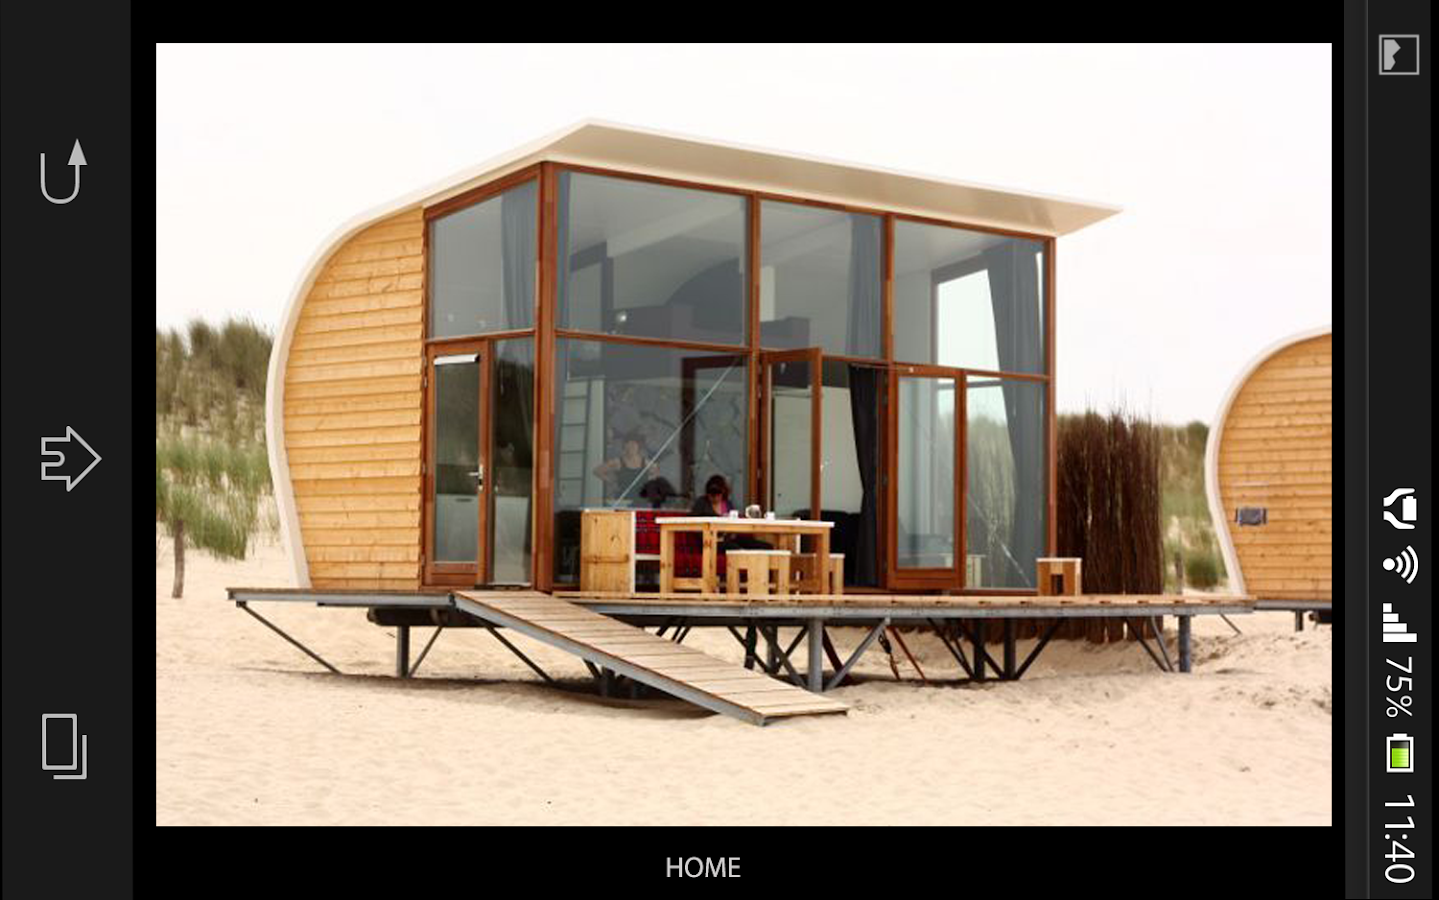 Tiny houses cottage ideas Android Apps on Google Play